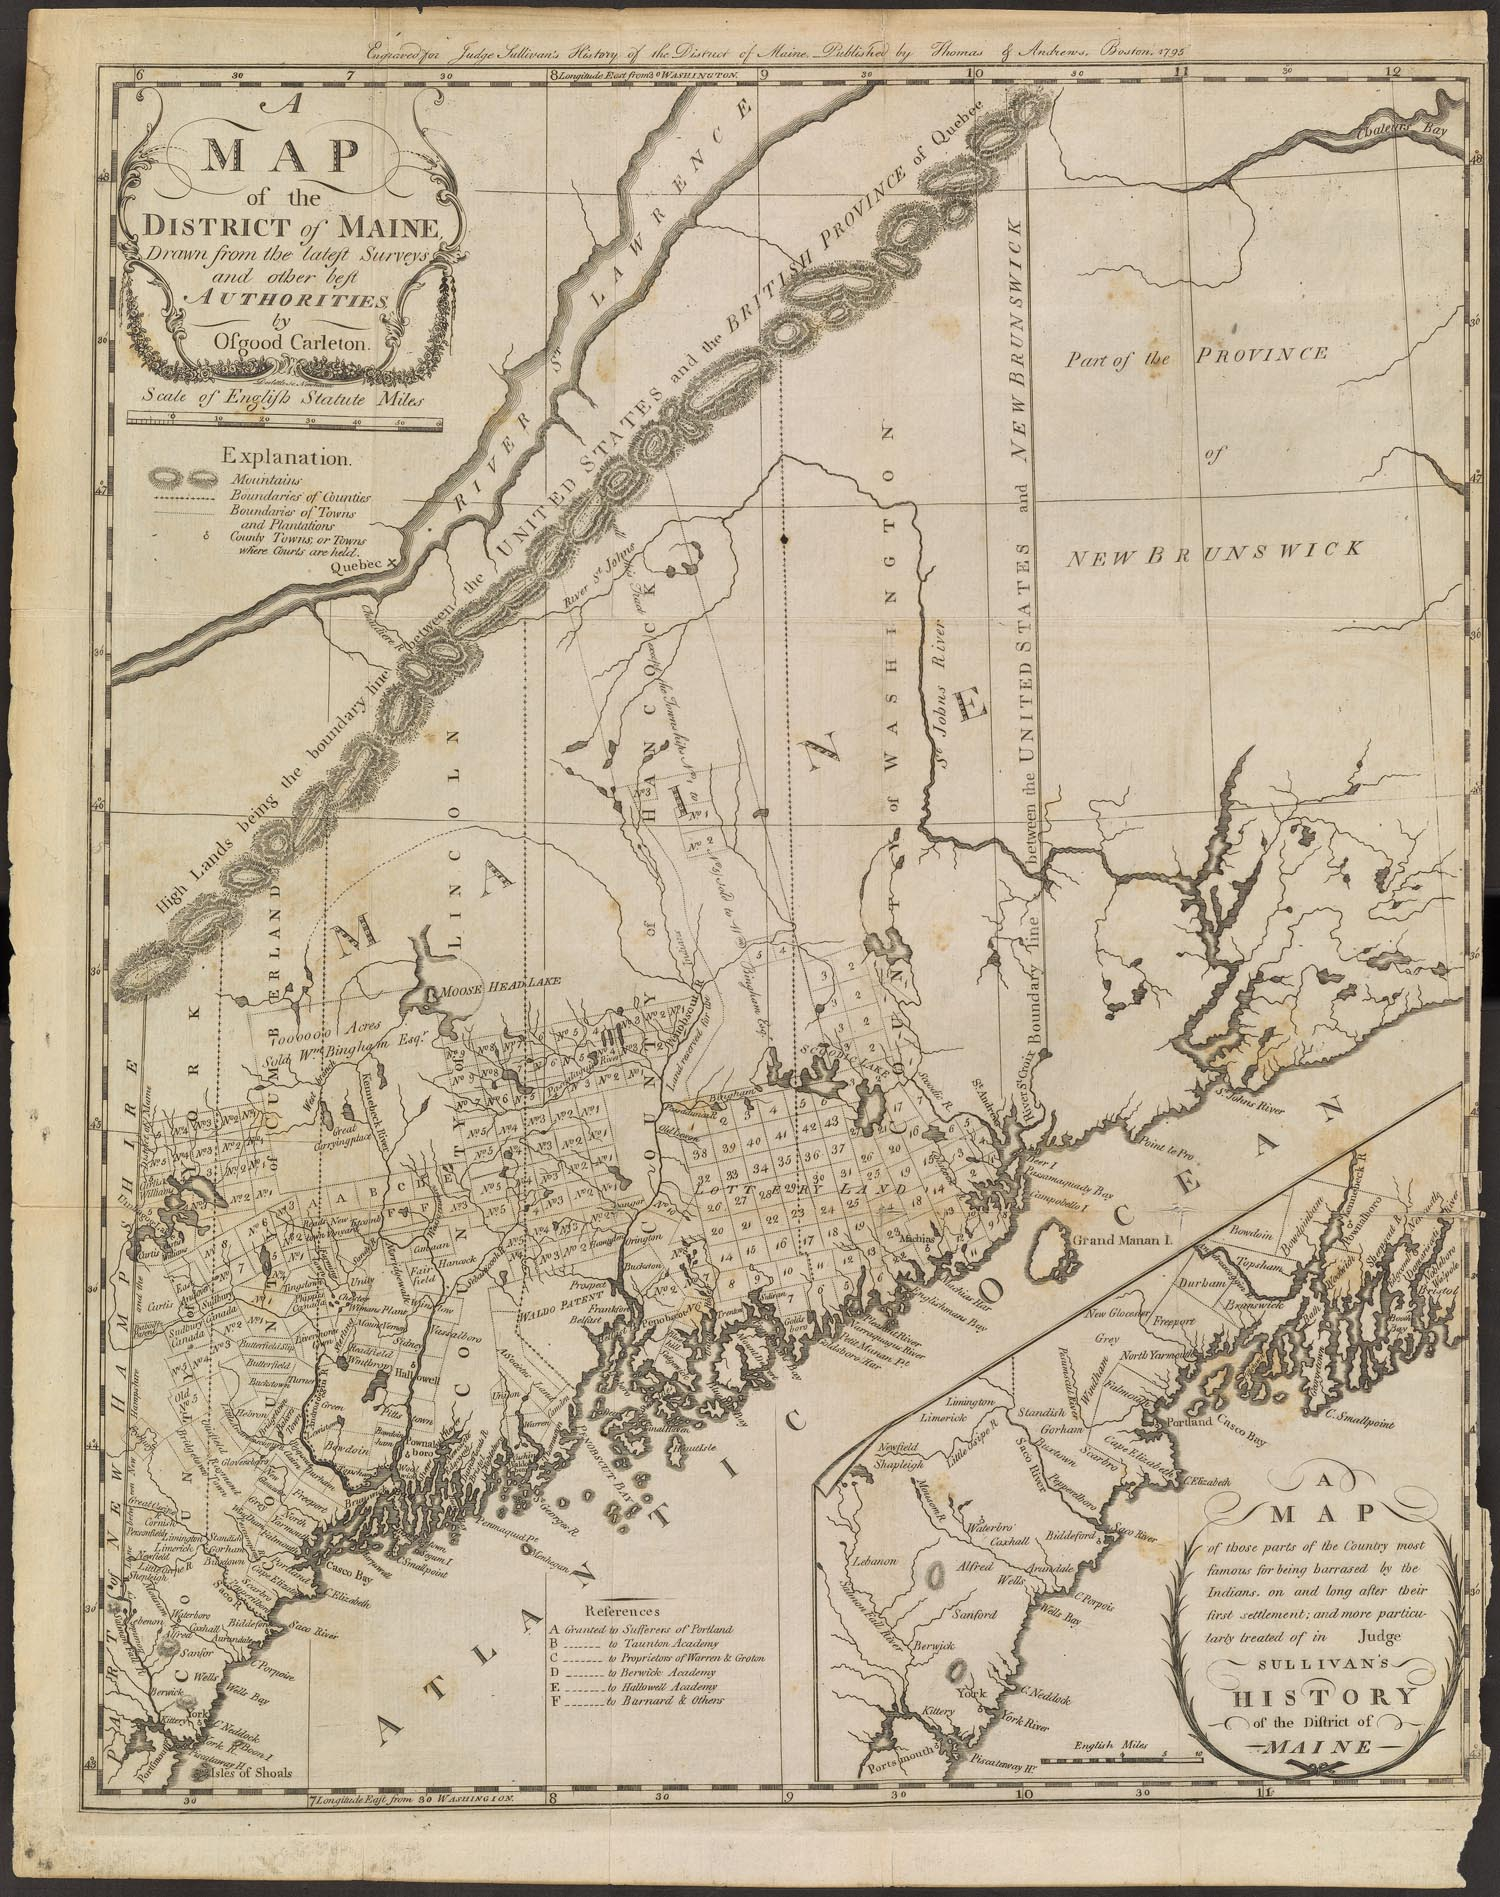 Fig. 2. Osgood Carleton,  Map of the District of Maine Drawn from the Latest Surveys and Other Best Authorities , frontispiece to James Sullivan,  The History of the District of Maine  (Boston: Isaiah Thomas, 1795). Thompson (2010, no. 2). Courtesy of the Osher Map Library and Smith Center for Cartographic Education, University of Southern Maine (Osher Collection).  https://oshermaps.org/map/11900.0001